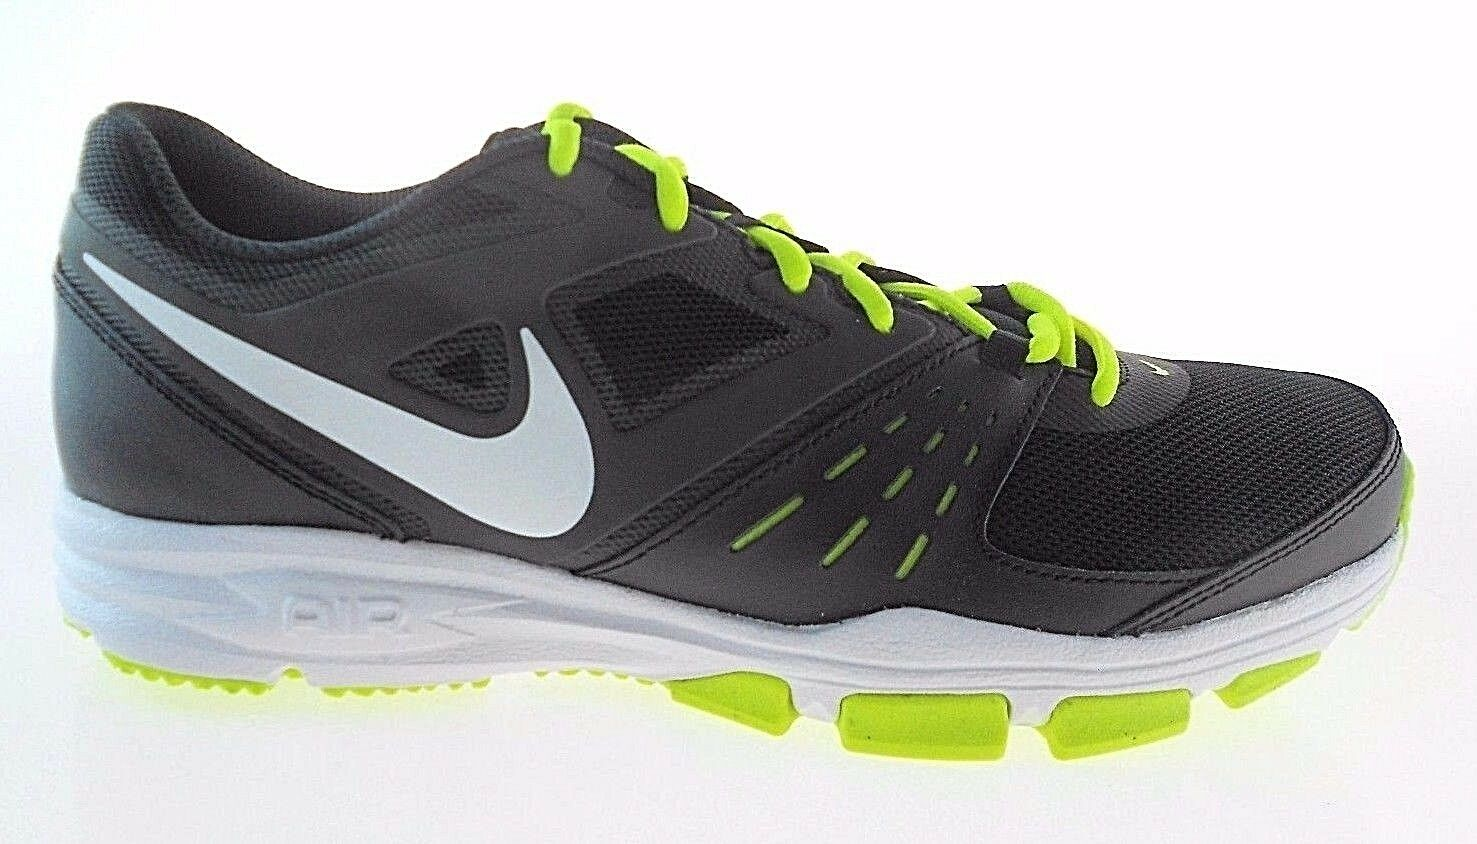 NIKE AIR ONE TR MEN'S BLACK/VOLT TRAINING SHOES,  Special limited time